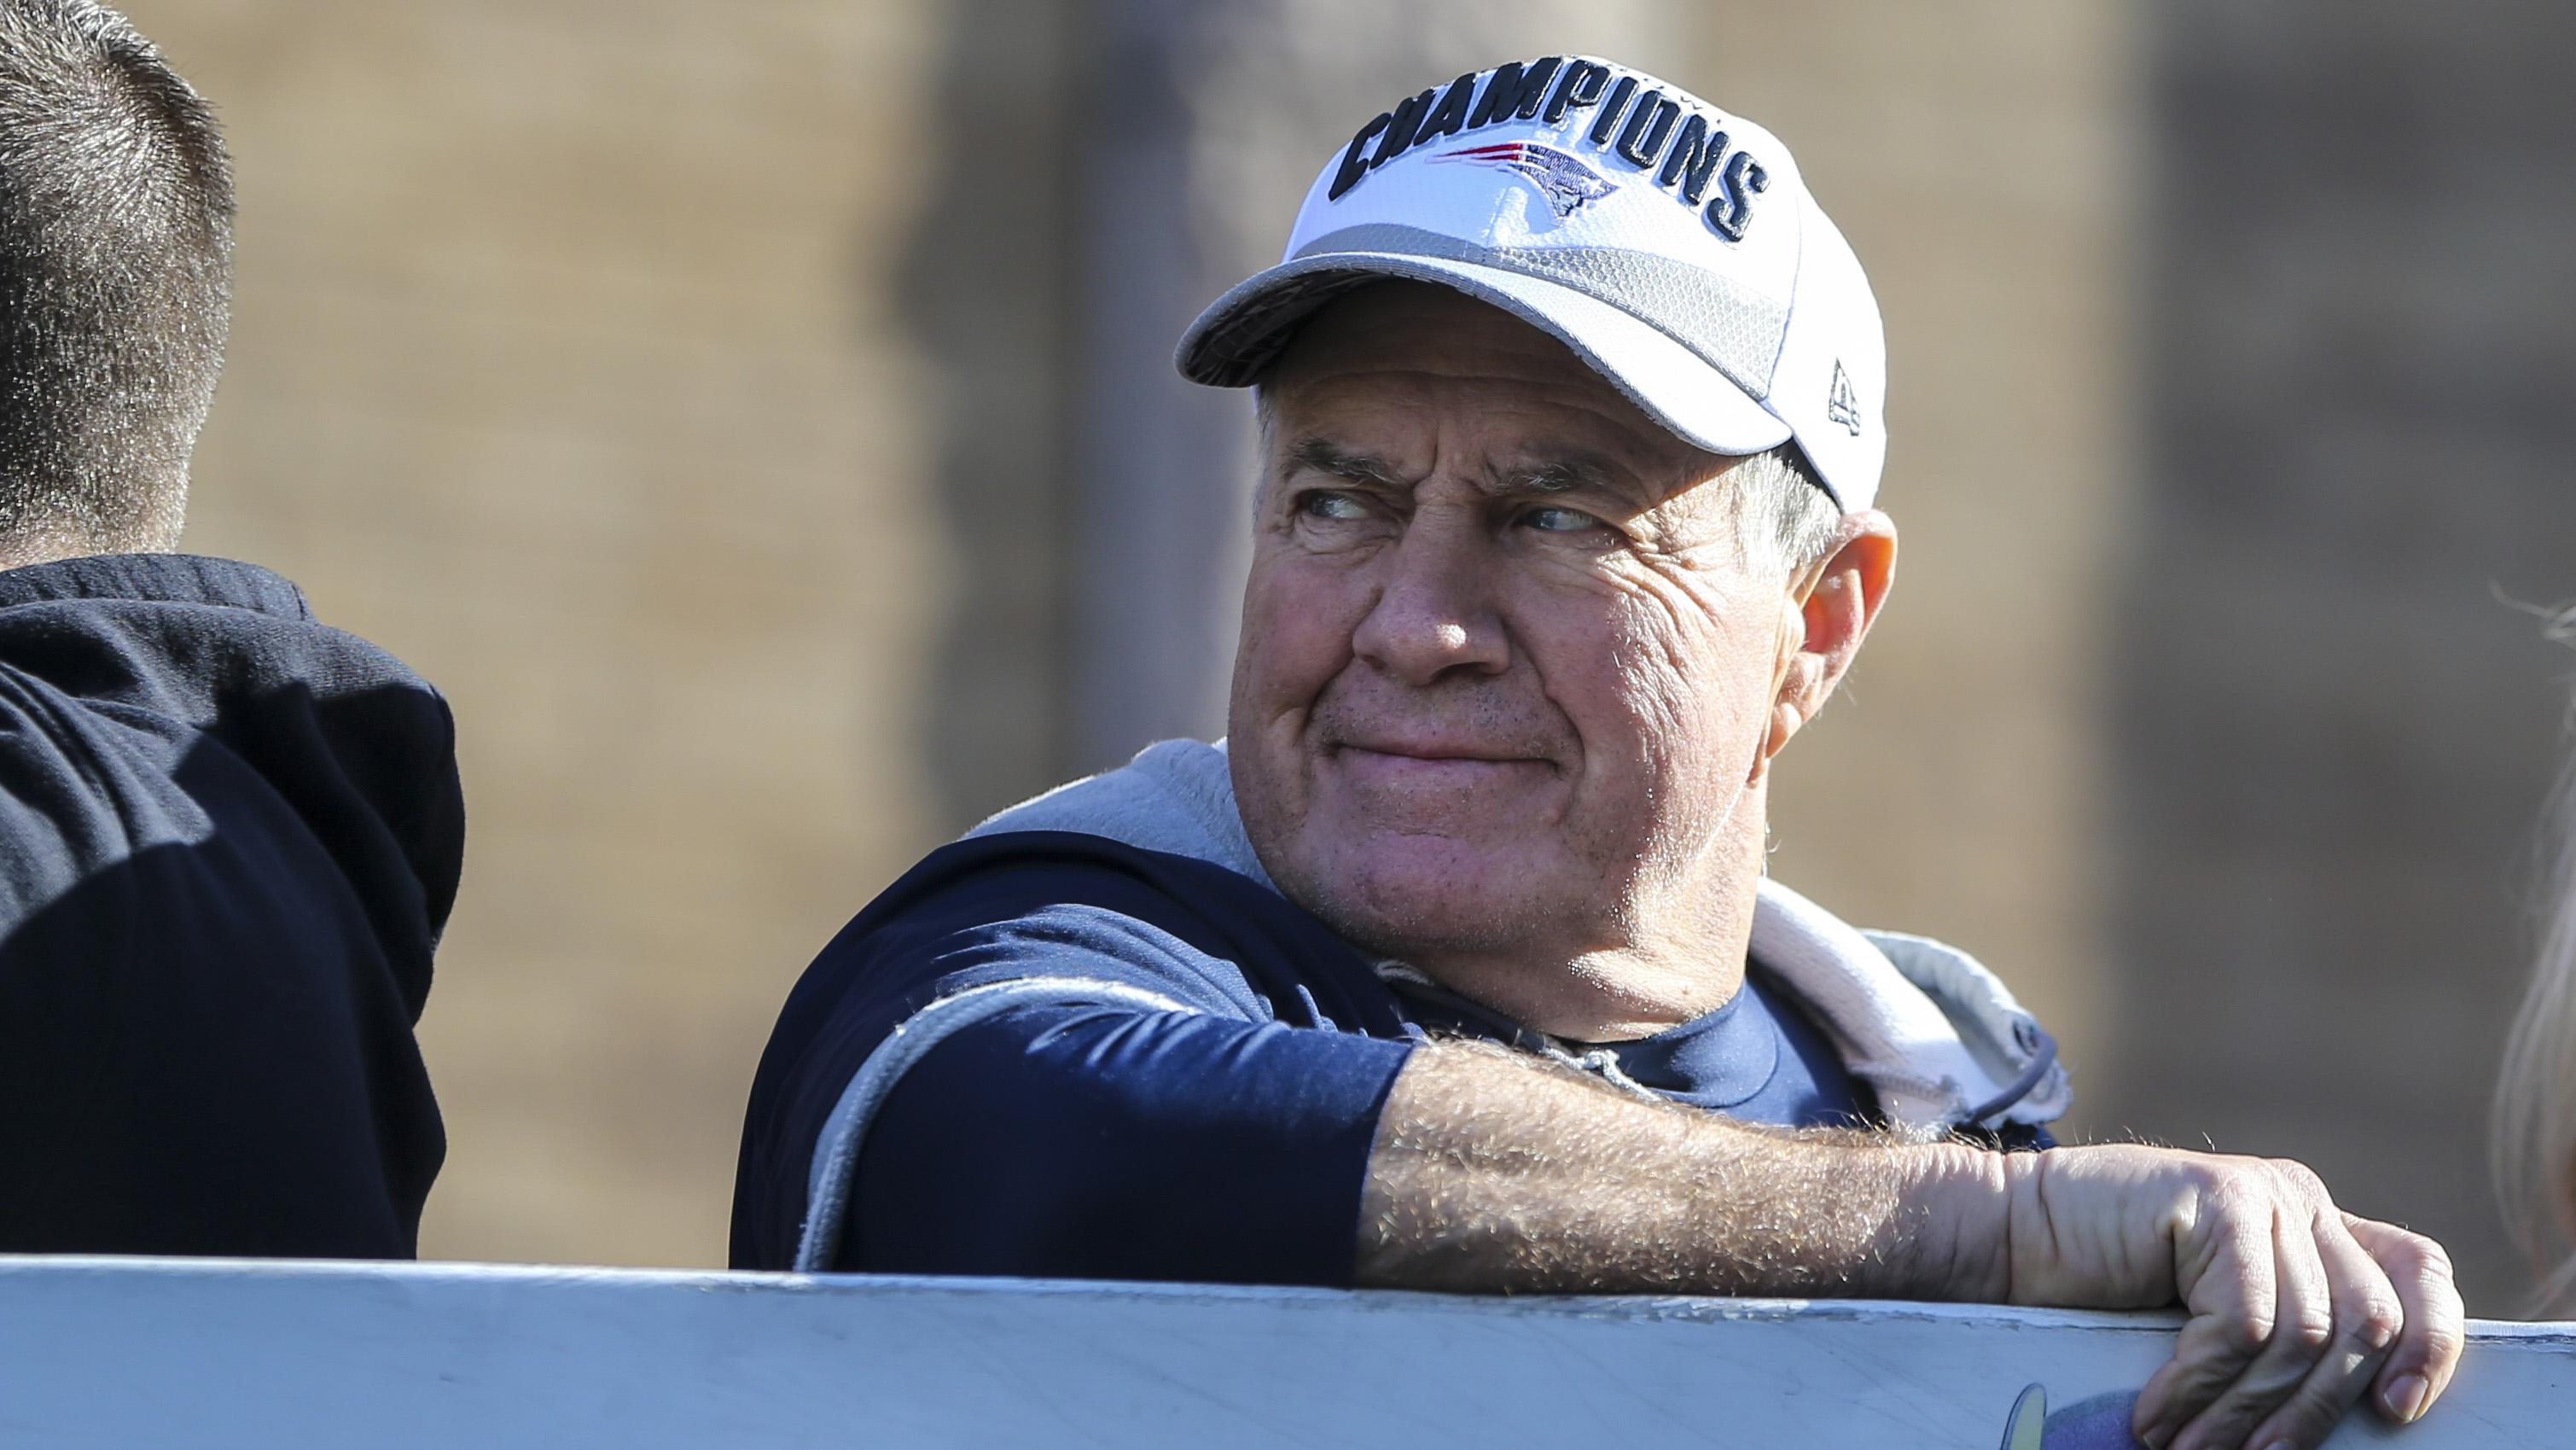 Bill Belichick boat: Patriots coach changes name after Super Bowl win